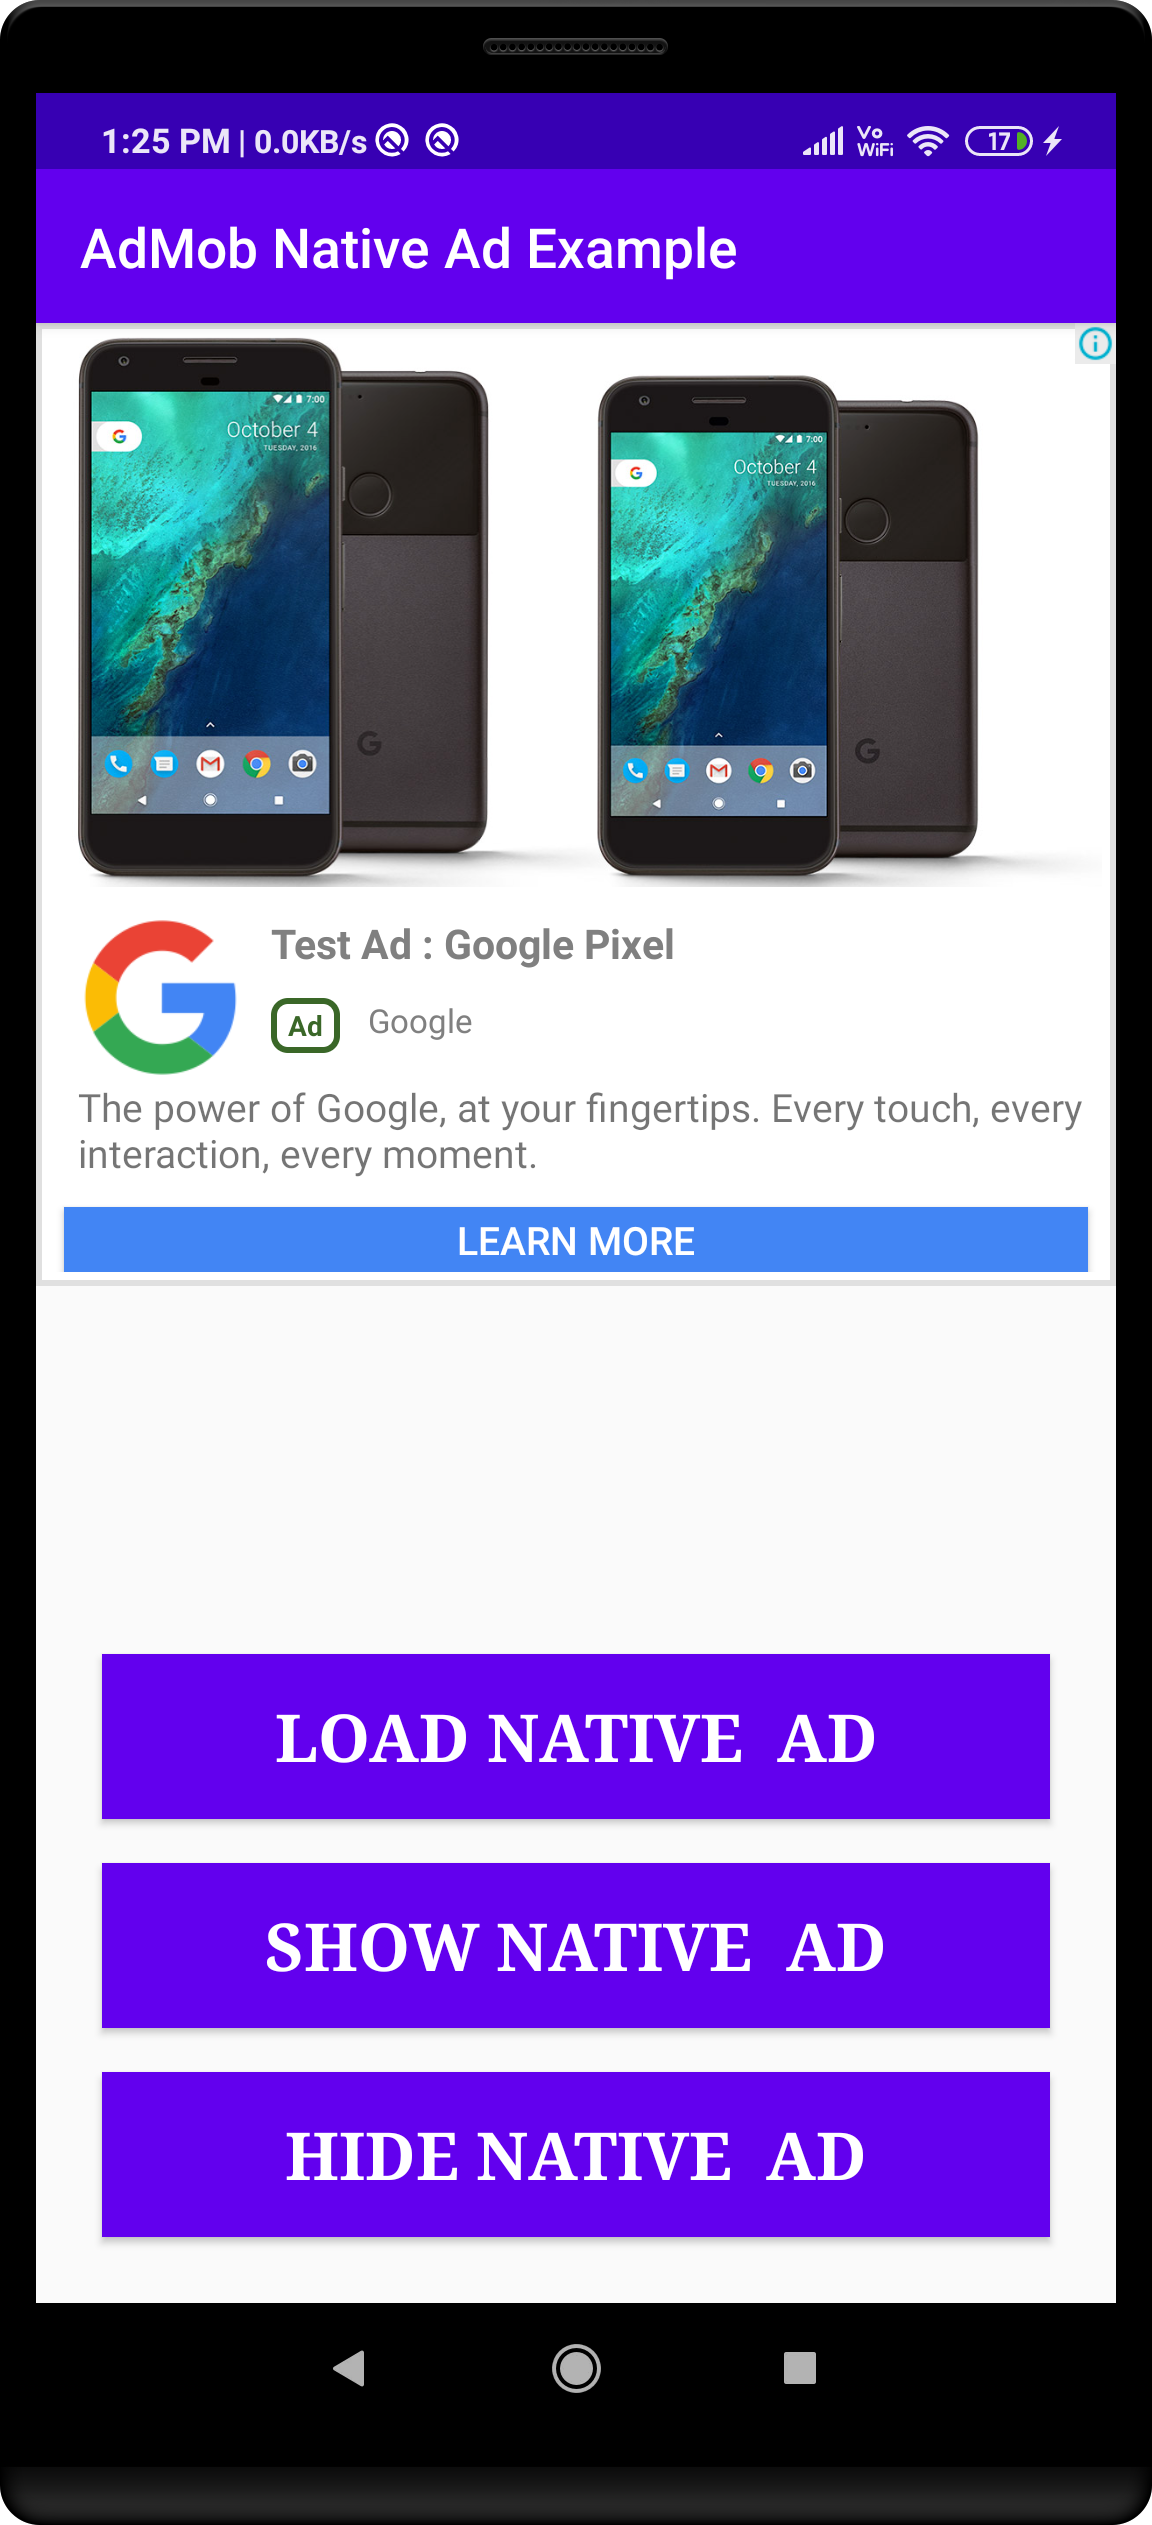 Admob native Ads example